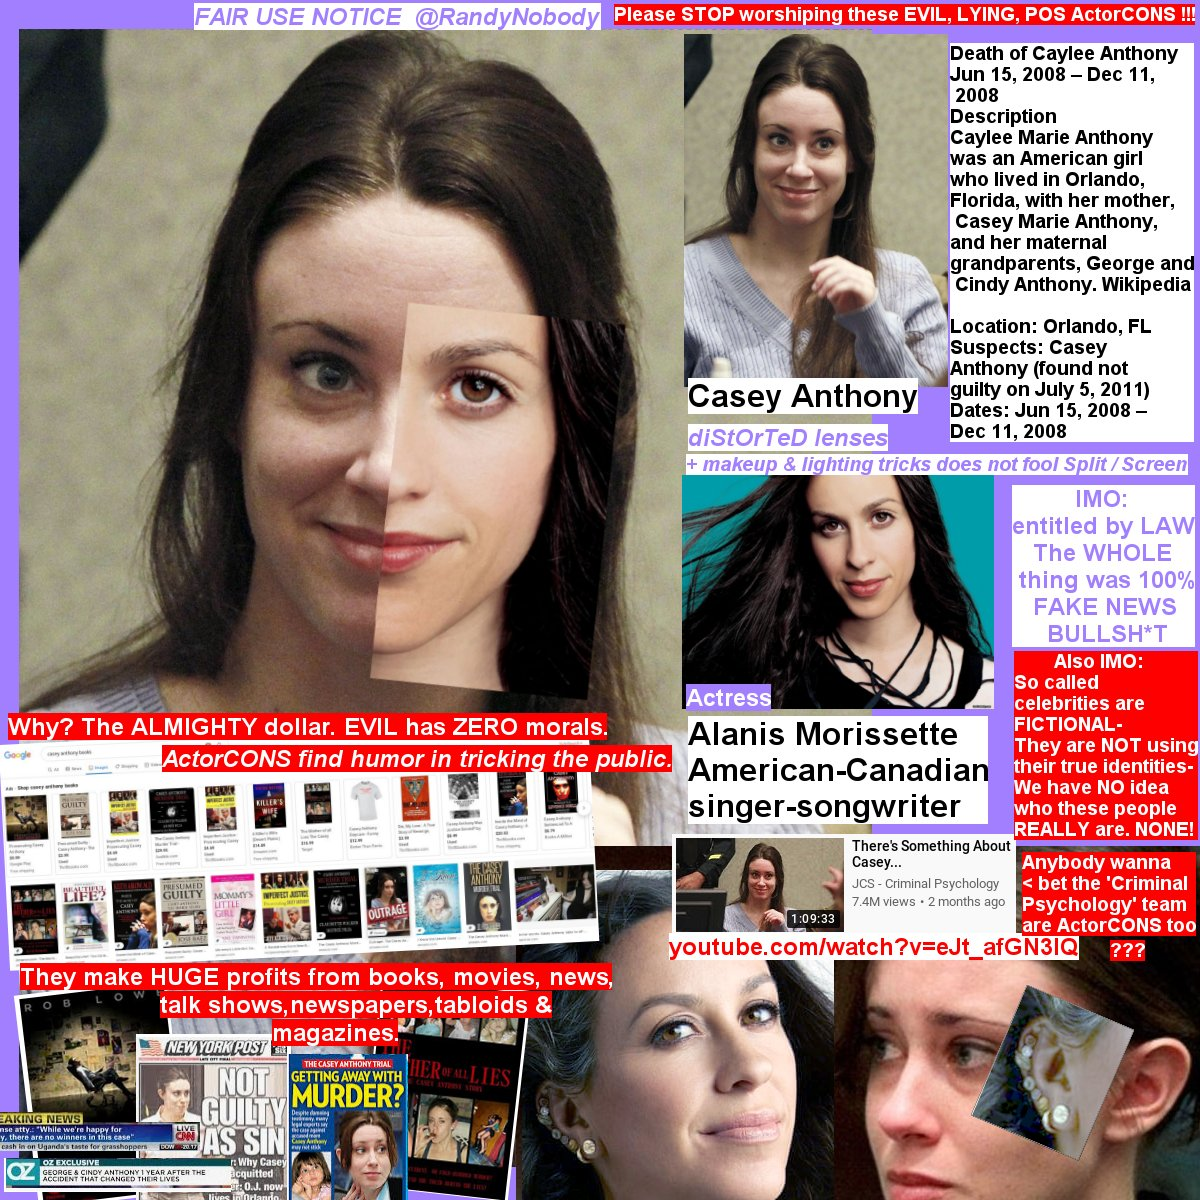 #NO #PHOTO=#CENSORED by @Twitter  #ActorCON #CaseyAnthony #AlanisMorissette #FAKEnews #news #murder #wth #wtf #wow #movies #books #talkshows #mystery #tabloids #crime #scams #music #pop #Canada #musica #singers #albums #FAKE #trials #law #police #magazines #celebrities #worship https://t.co/ubLWyF8gzj